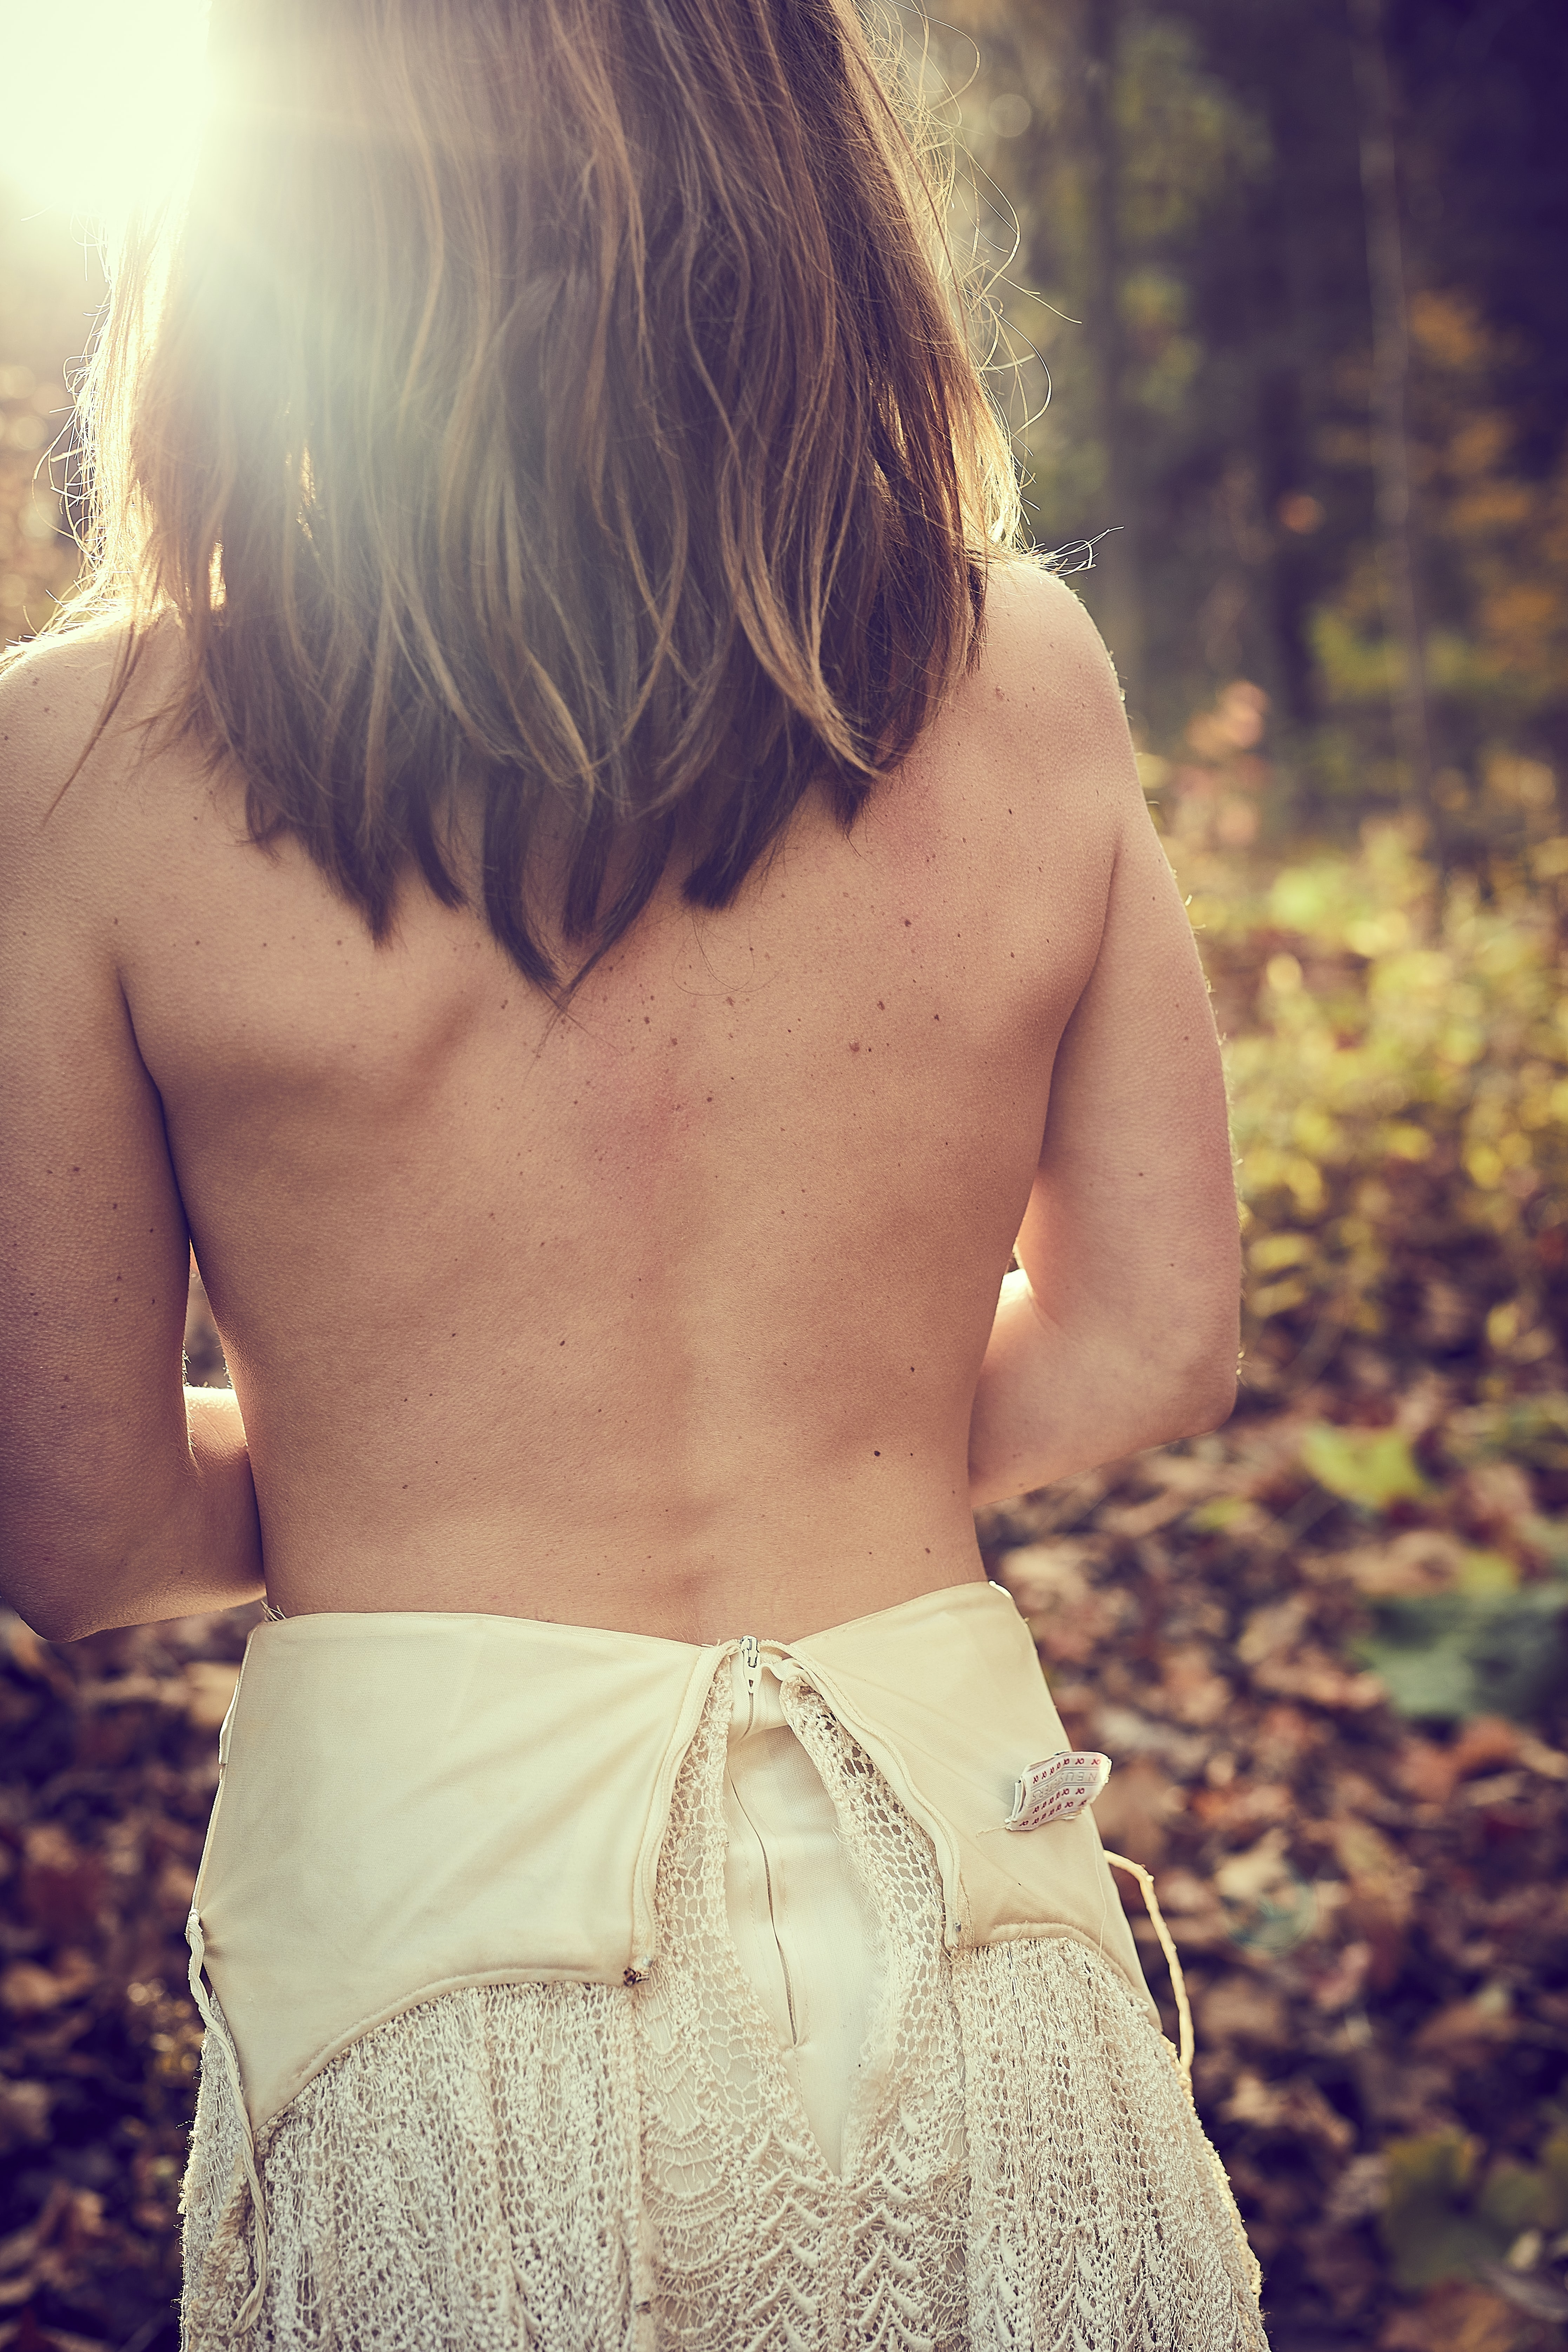 woman top less near plants during daytime